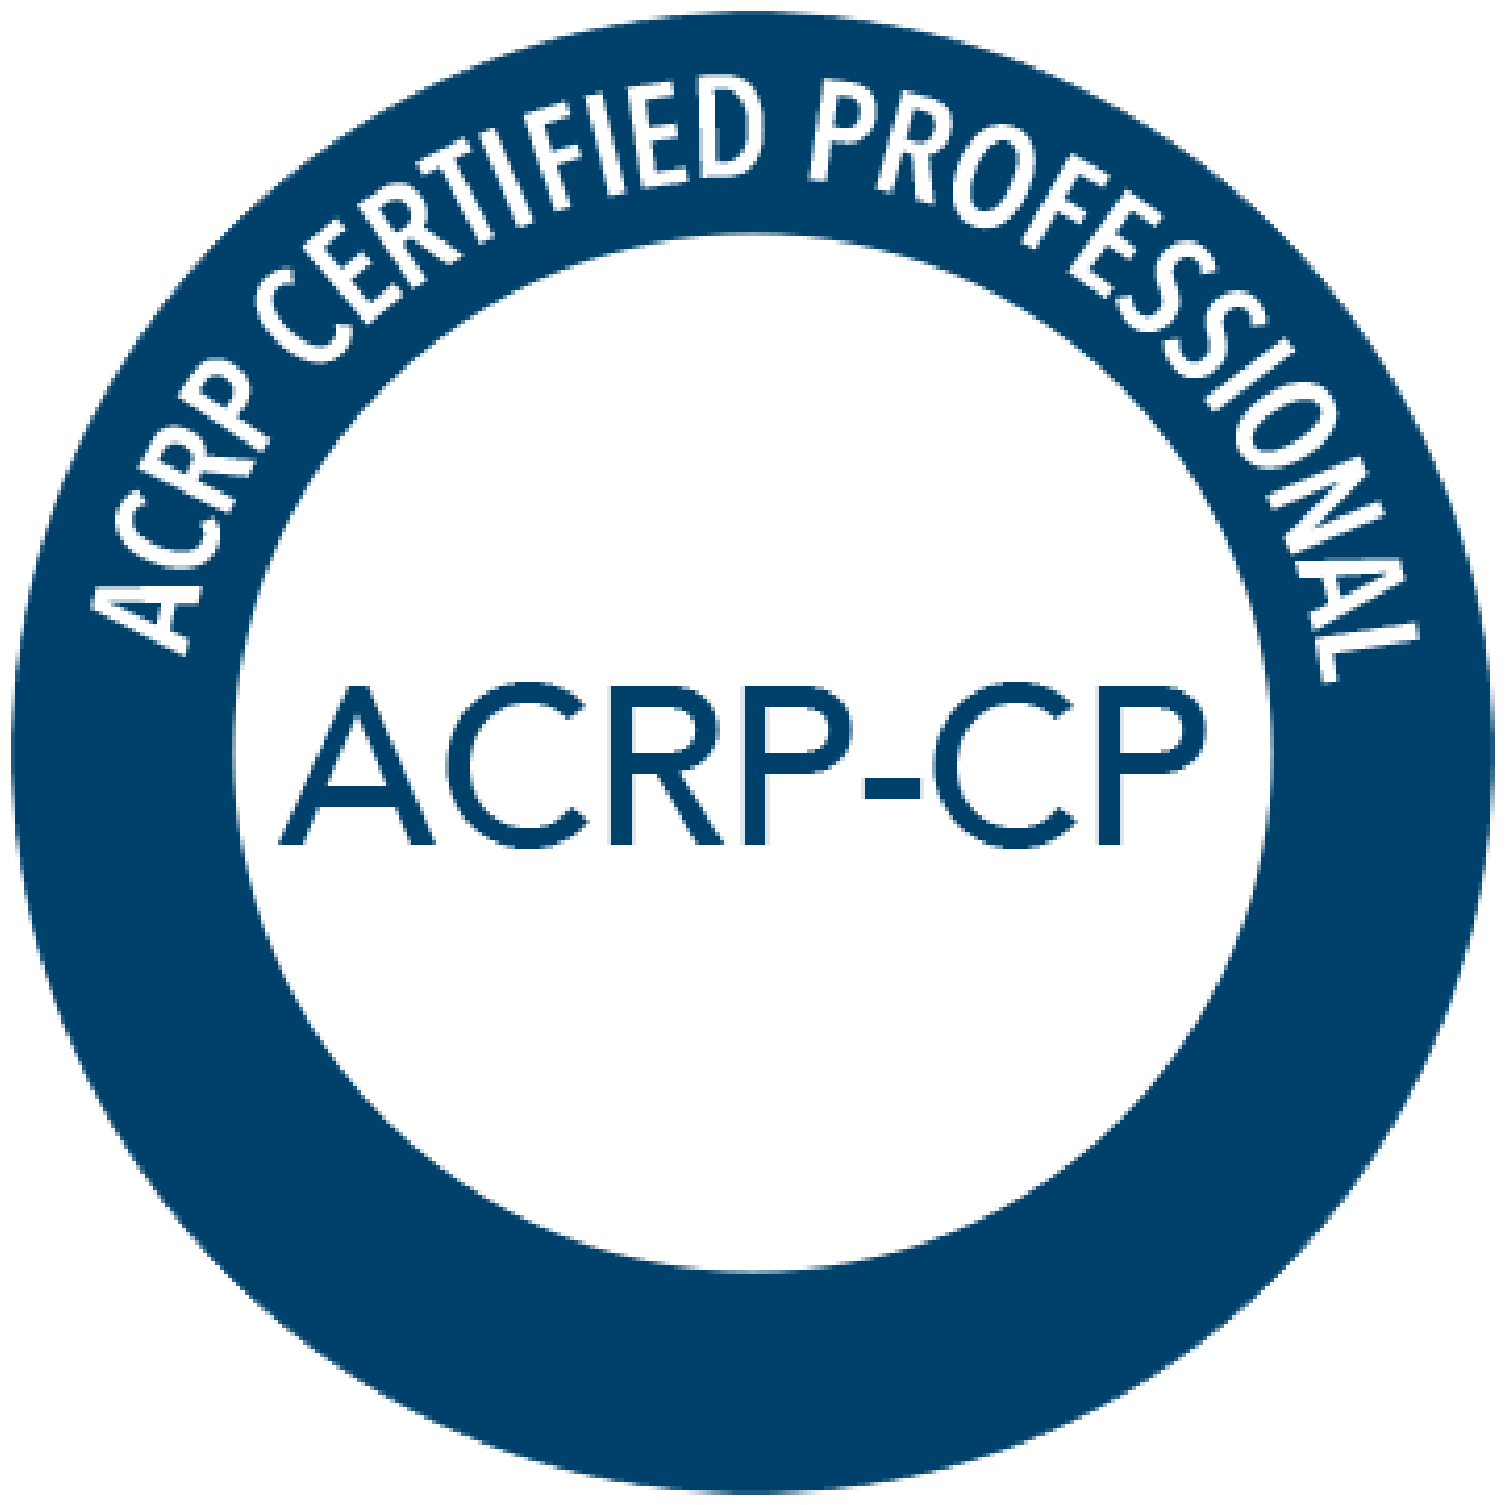 acrp clinical certification cp research trim clear professional professionals program announcing certified roles rapid responds evolution categories